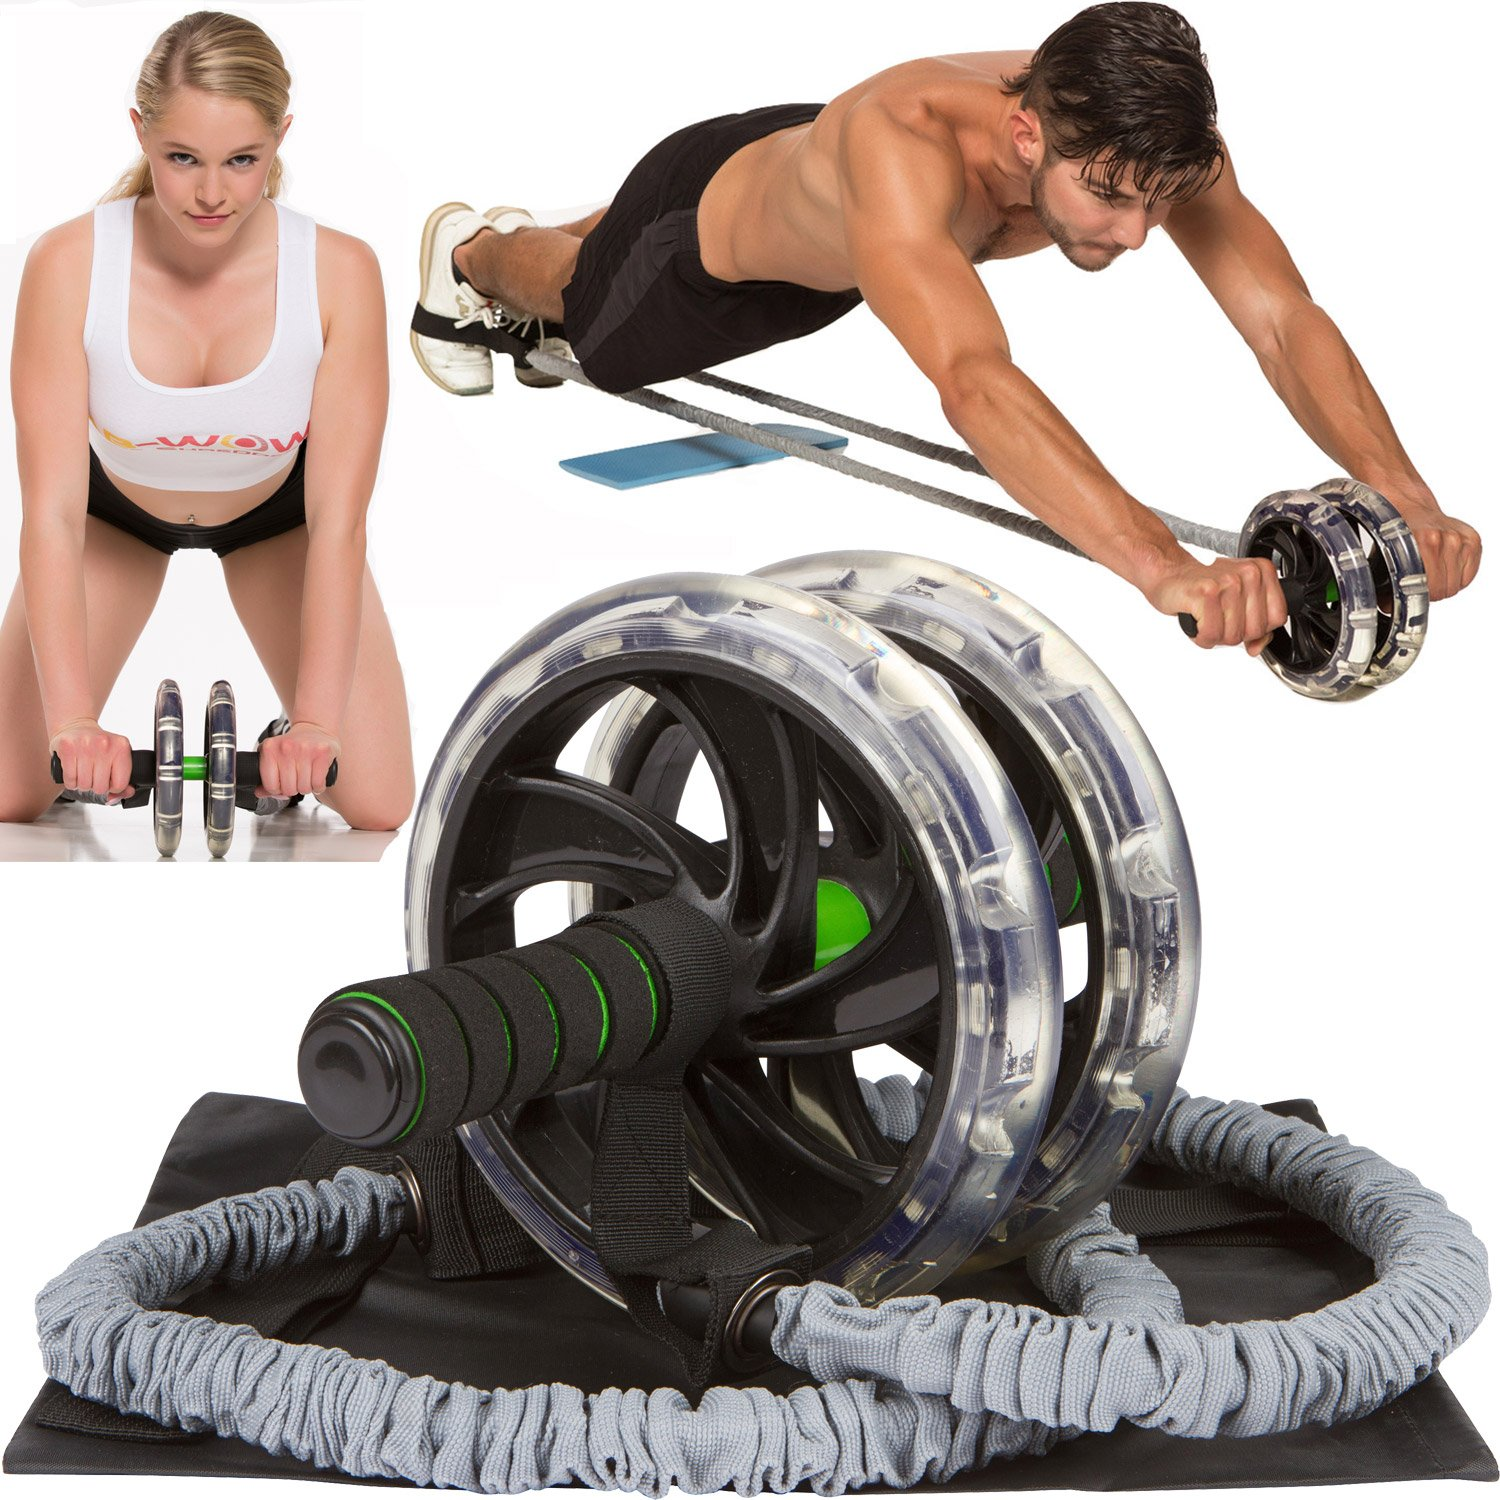 Ab Roller Abdominal Workout Wheel AB WOW Abs Trainer Abdominal Exercise Equipment with Bonuses, Supports up to 500 lbs by Company 19 LLC